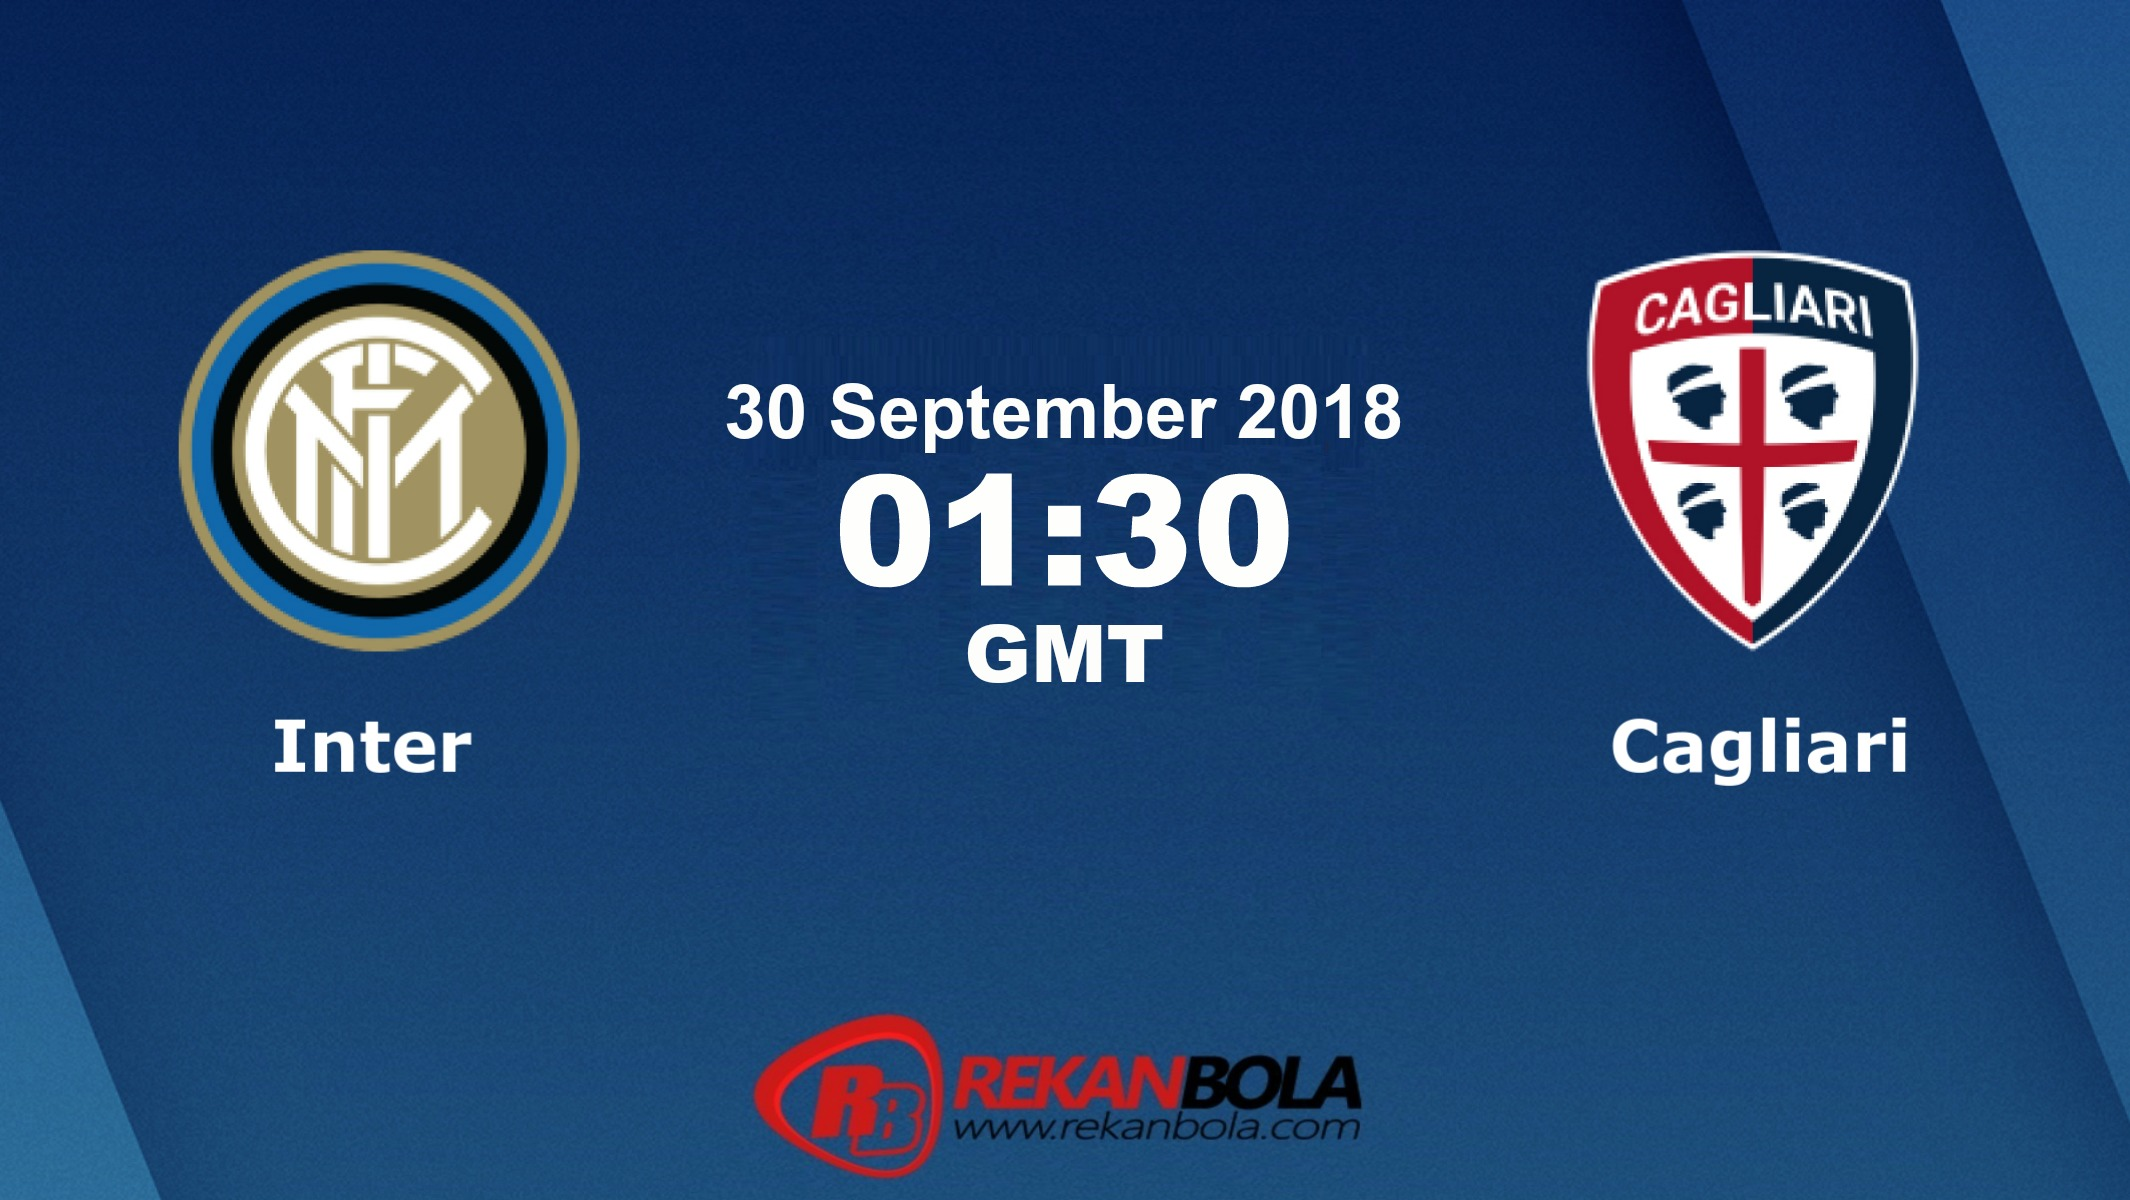 Nonton Siaran Live Streaming Inter Vs Cagliari 30 September 2018